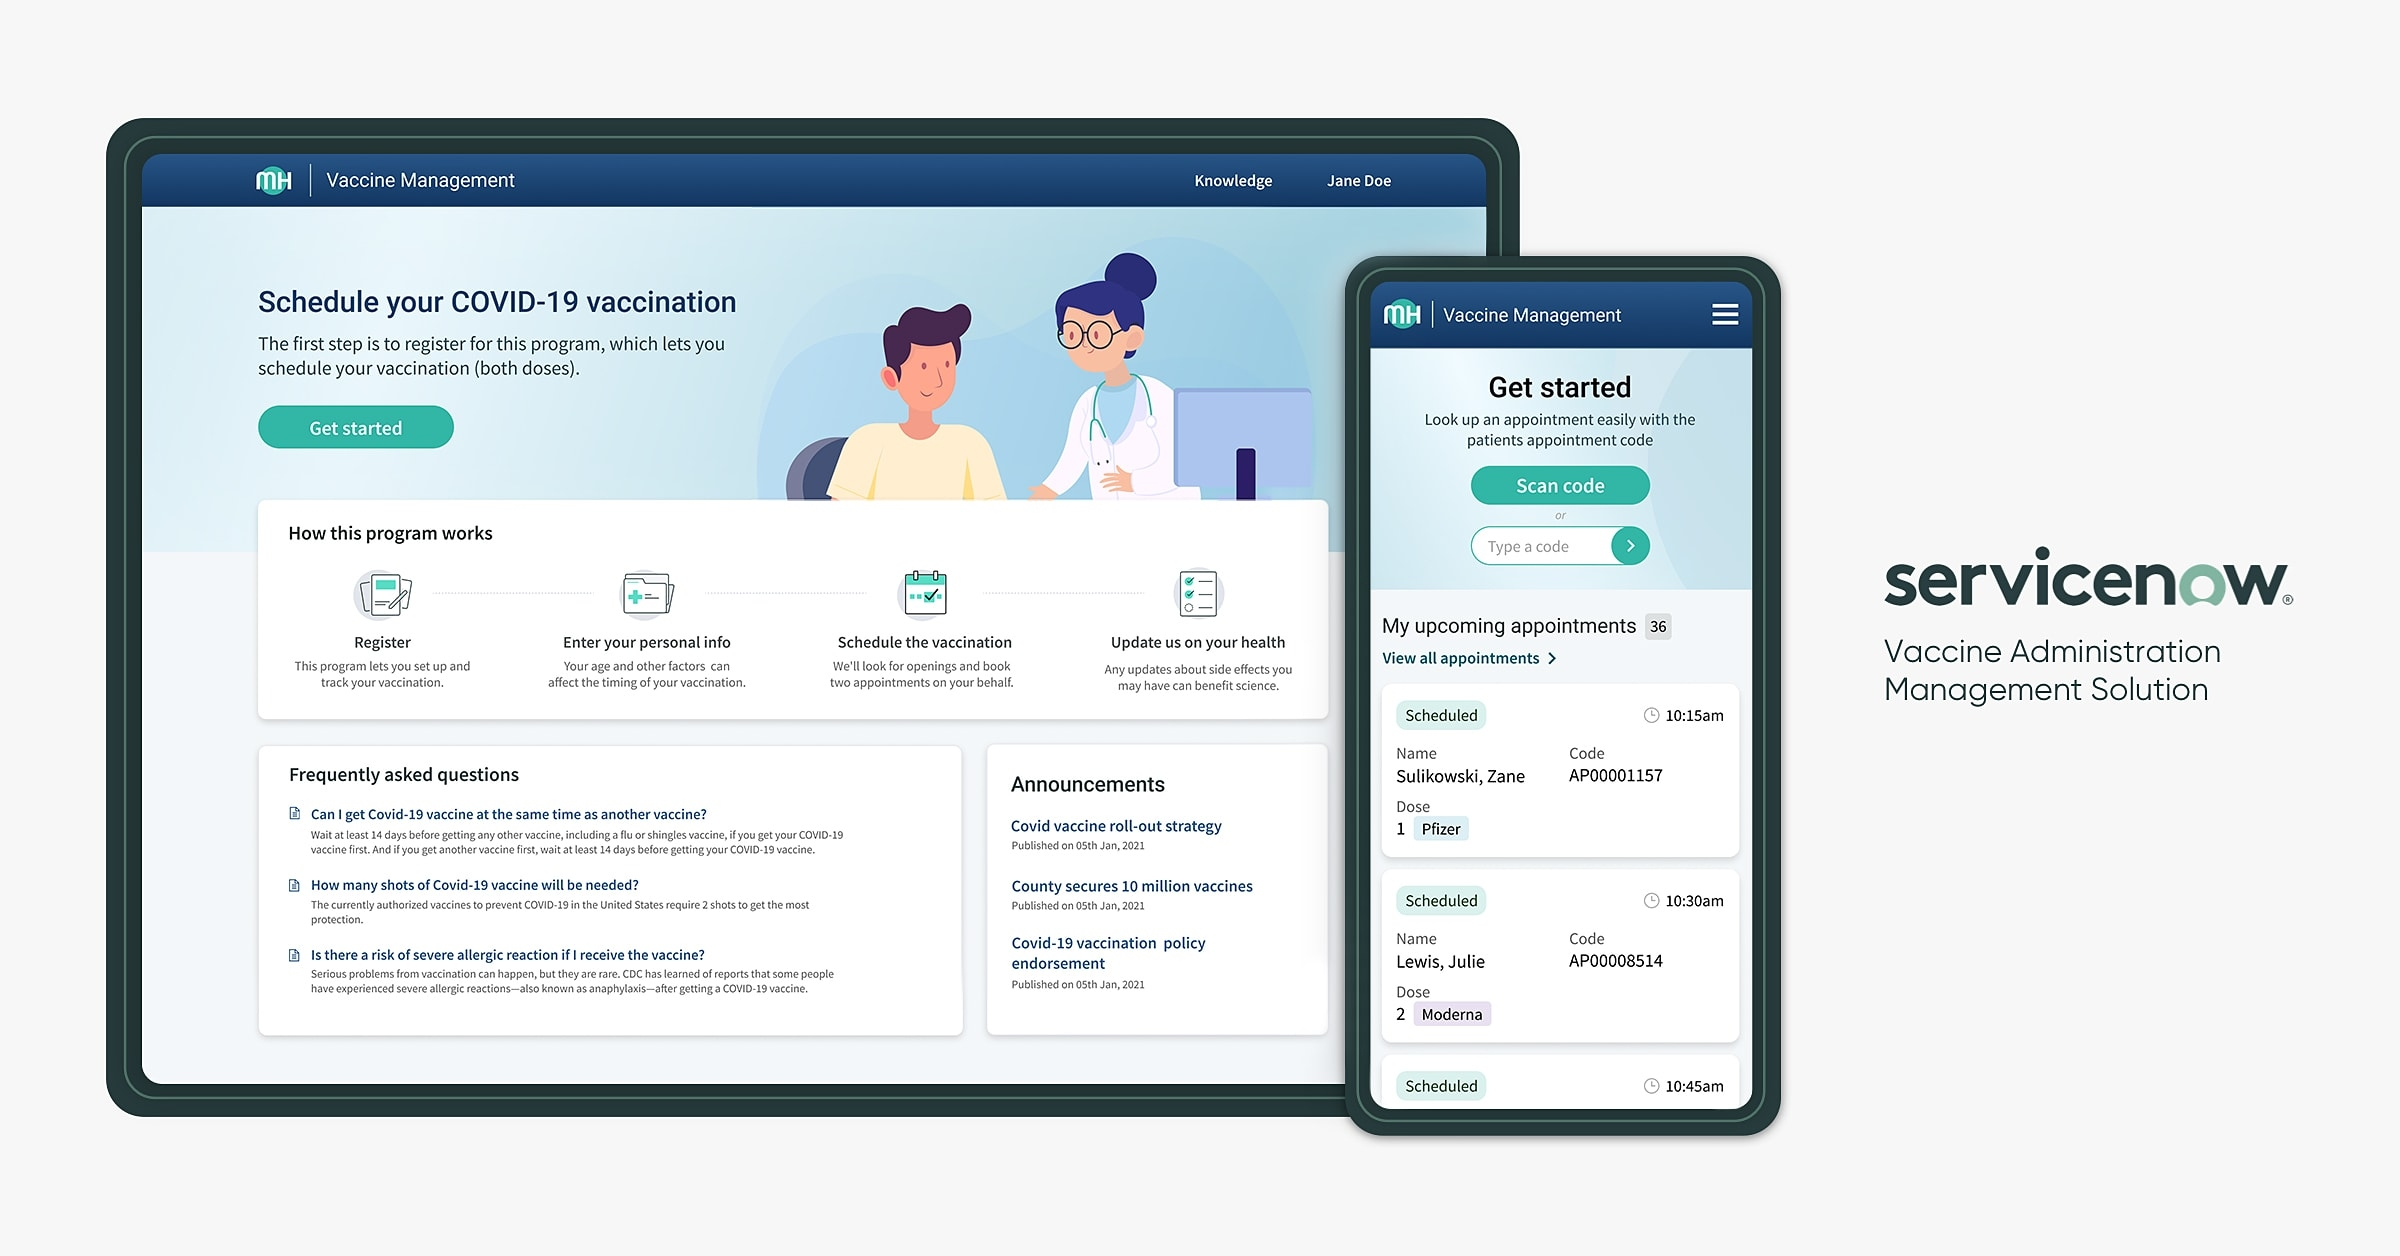 ServiceNow-vaccine-administration-management-solution- techxmedia